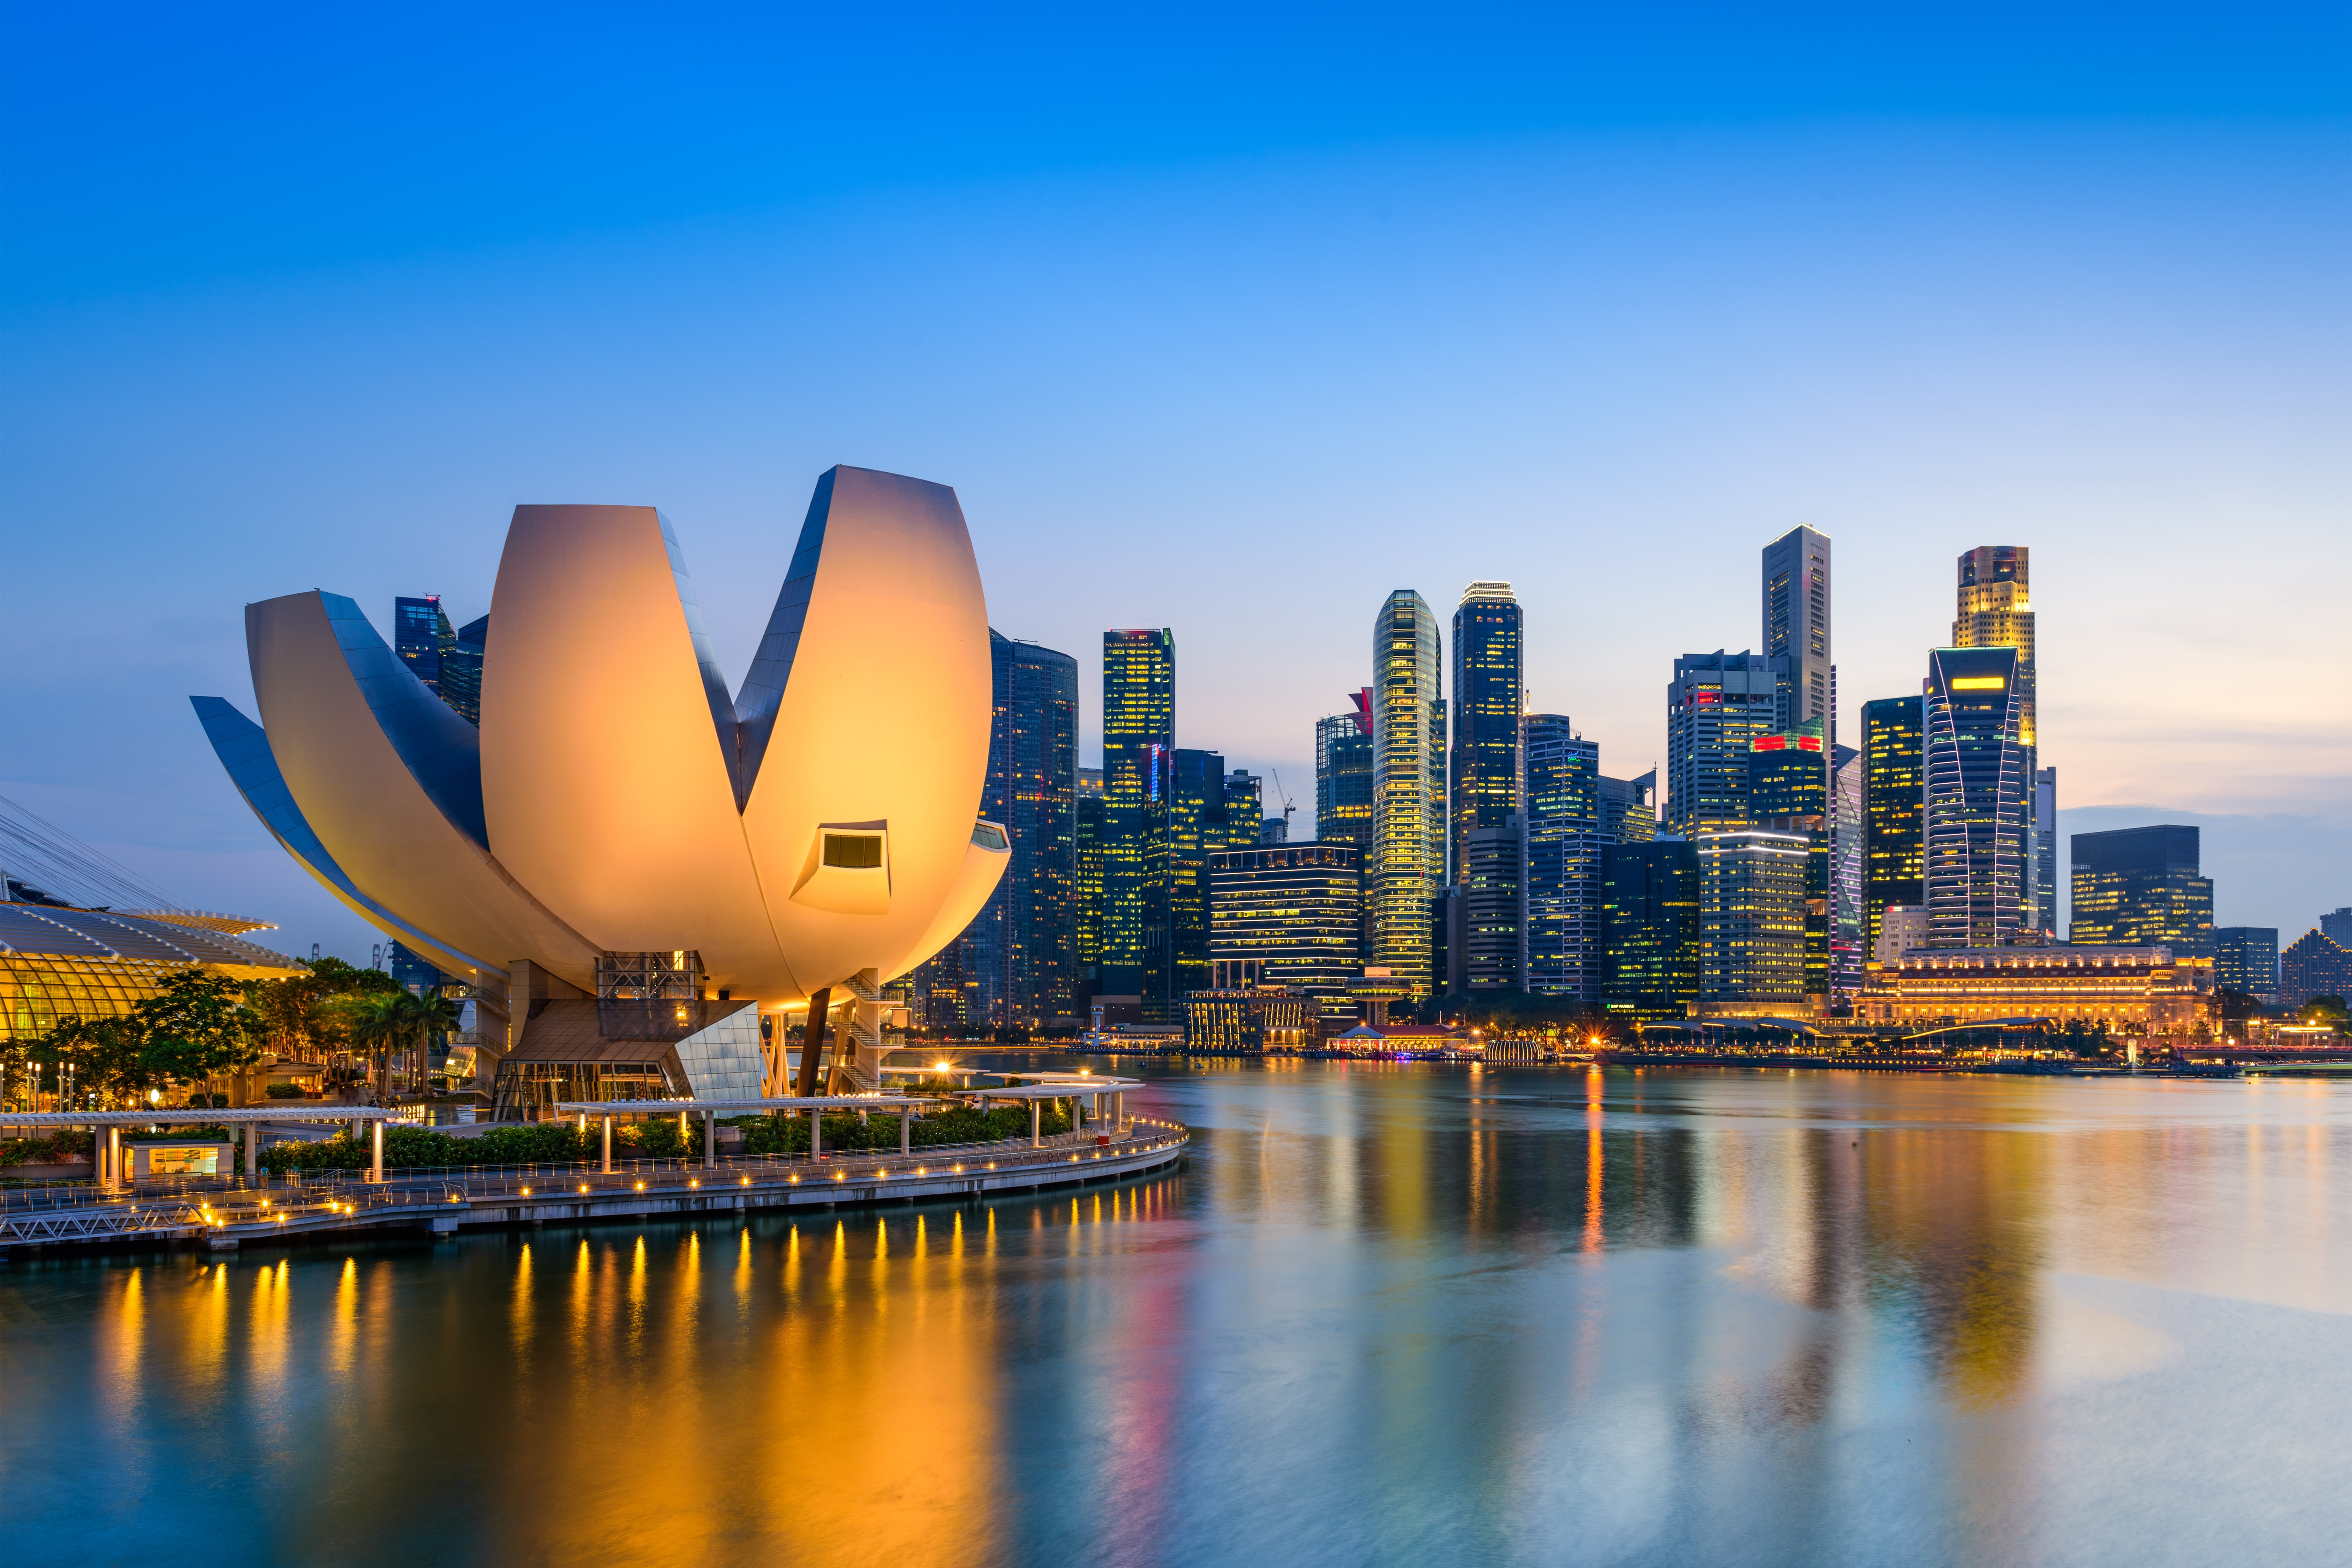 10 of the biggest Corporate Innovation Programs in Singapore